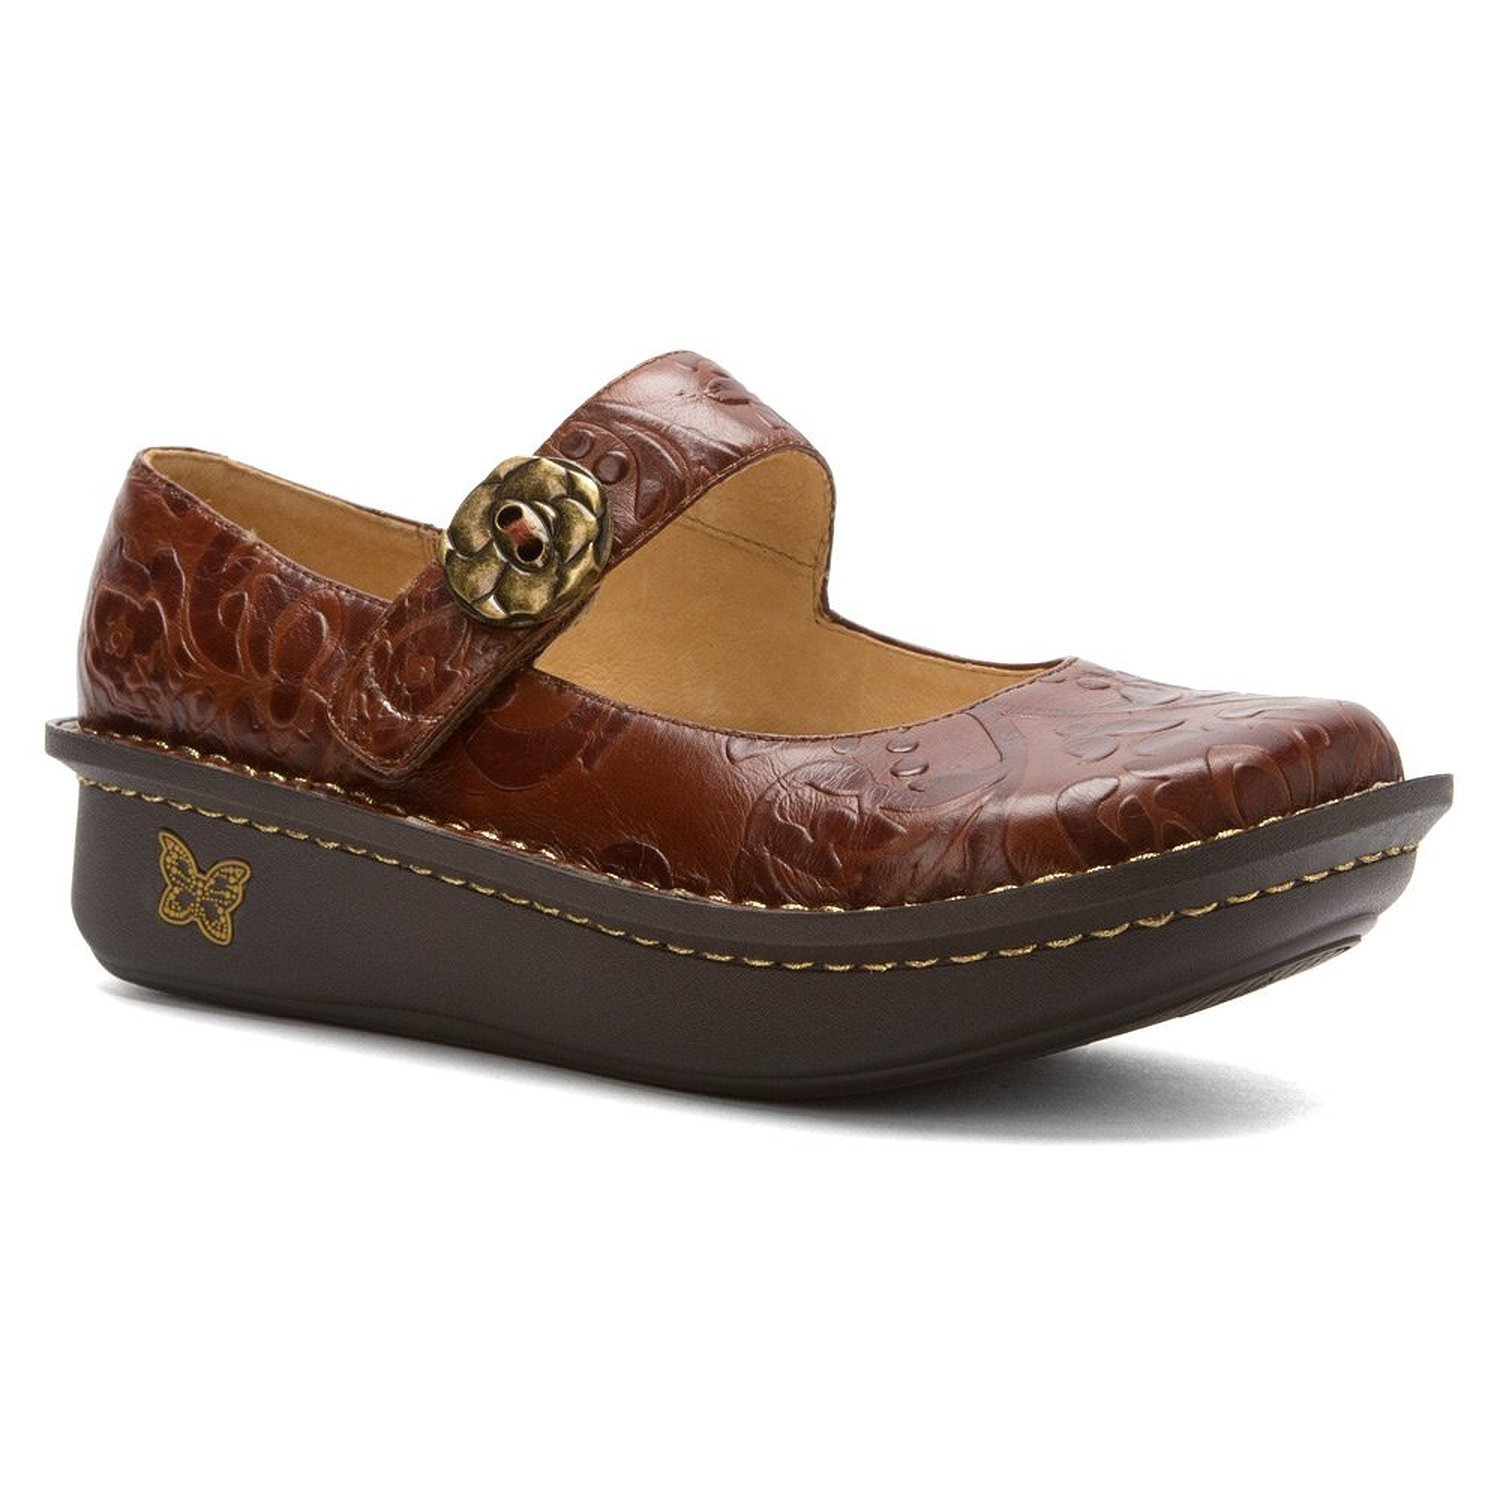 Alegria Women's Paloma Yeehaw Clog/Mule 37 (US Women's 7-7.5) Regular